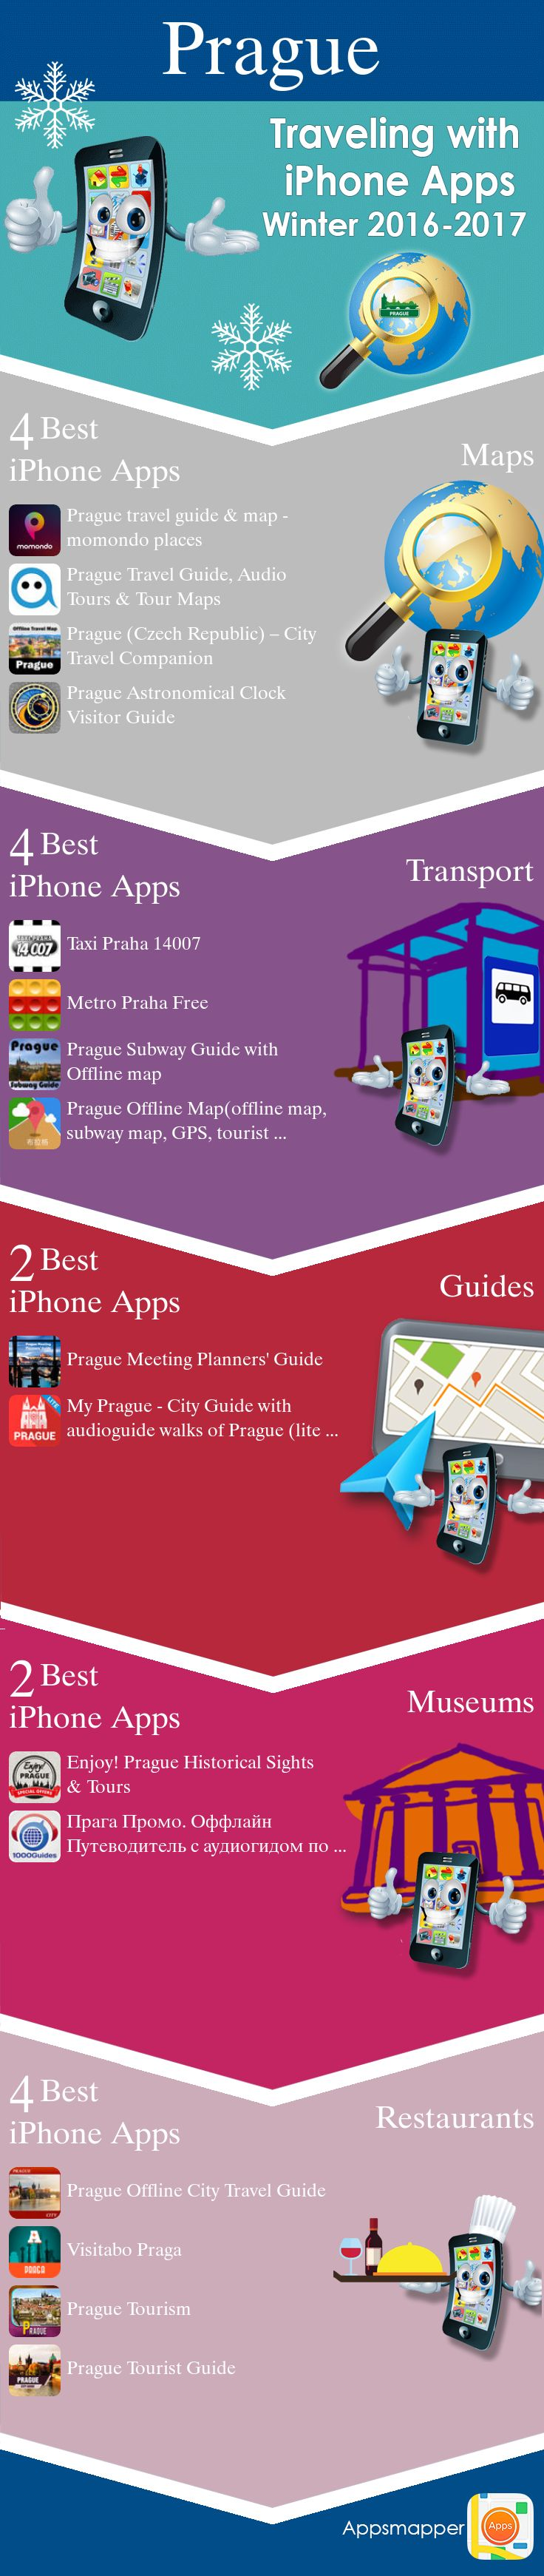 Prague iPhone apps: Travel Guides, Maps, Transportation, Biking, Museums, Parking, Sport and apps for Students.